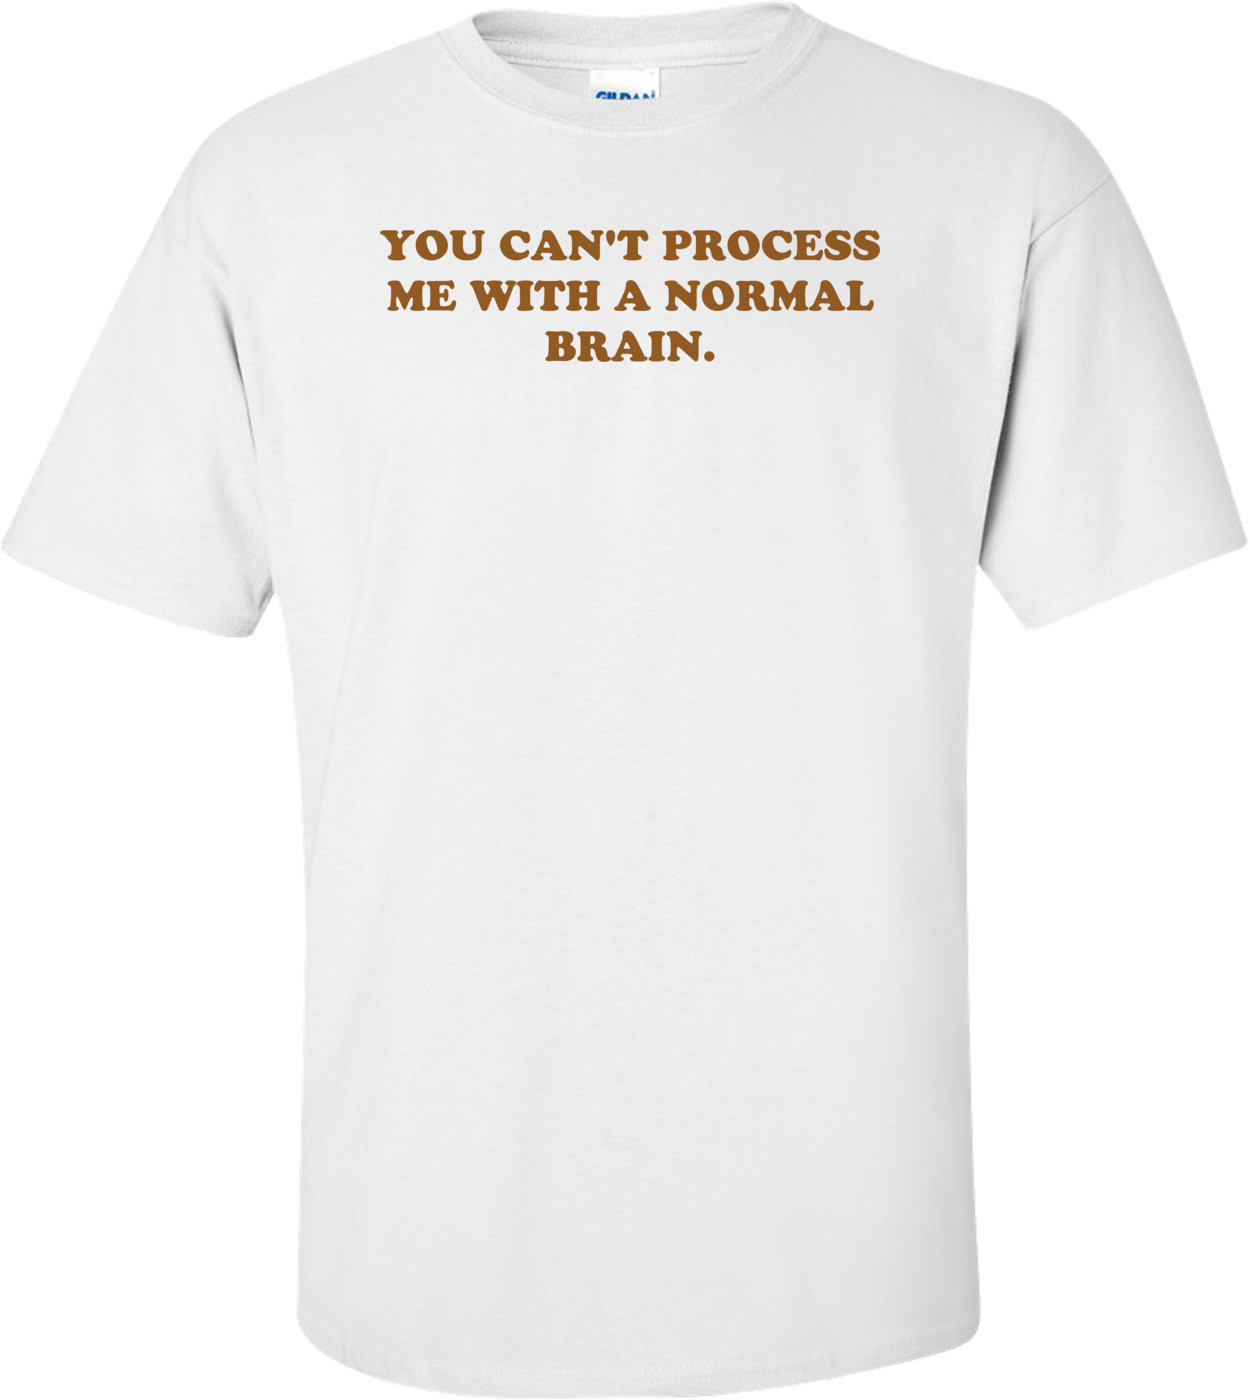 YOU CAN'T PROCESS ME WITH A NORMAL BRAIN. Shirt